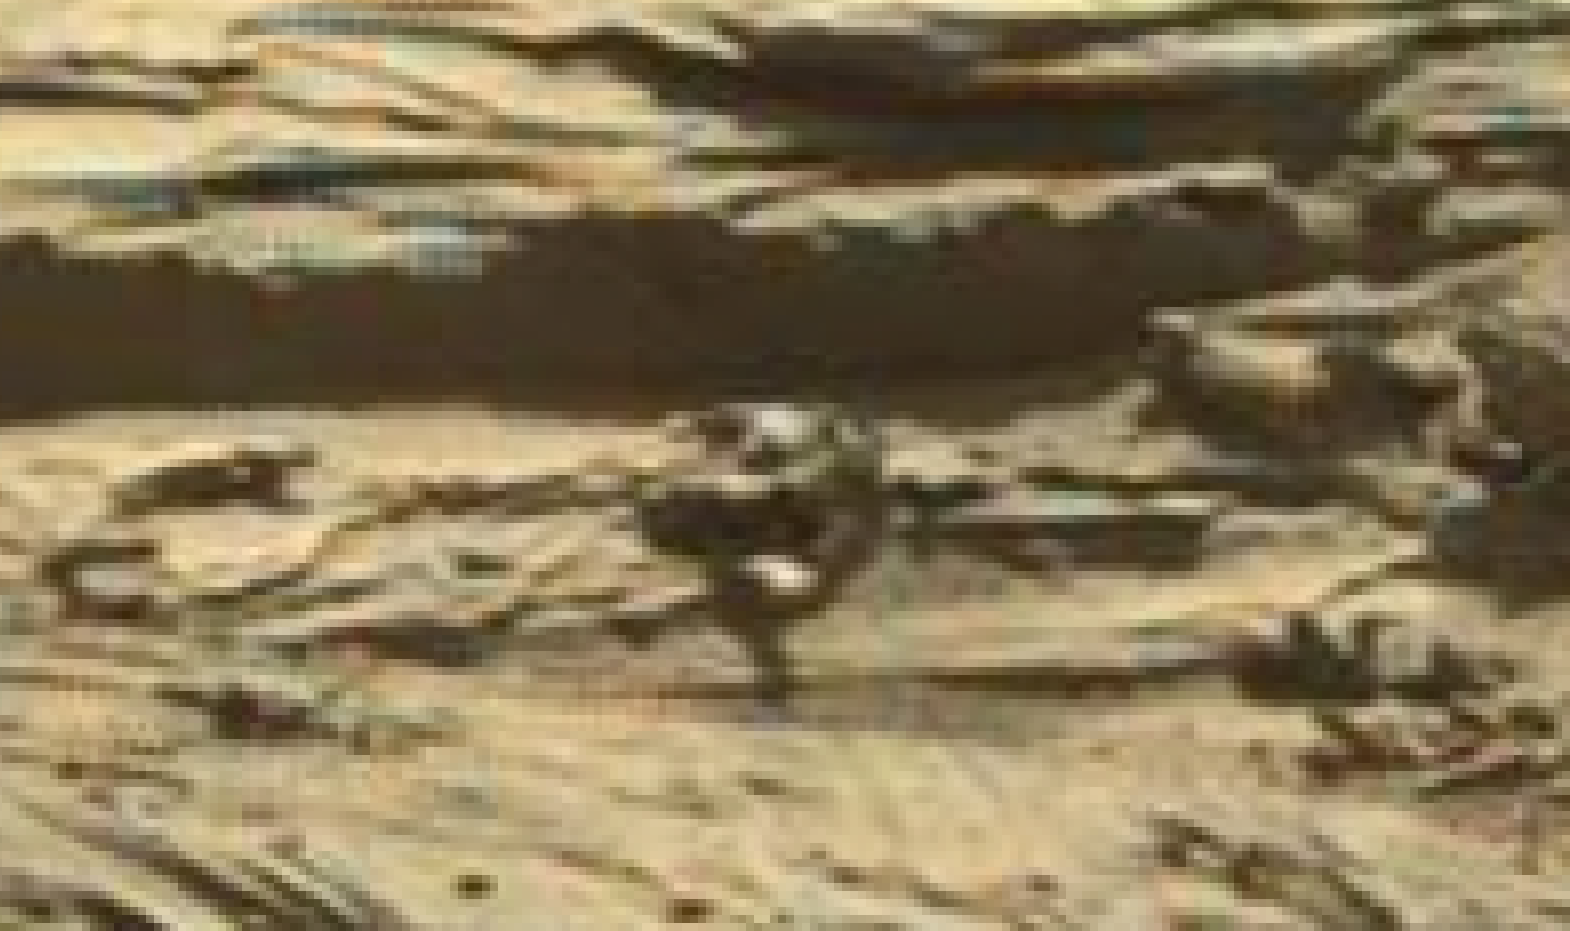 mars sol 1298 anomaly-artifacts 11 was life on mars